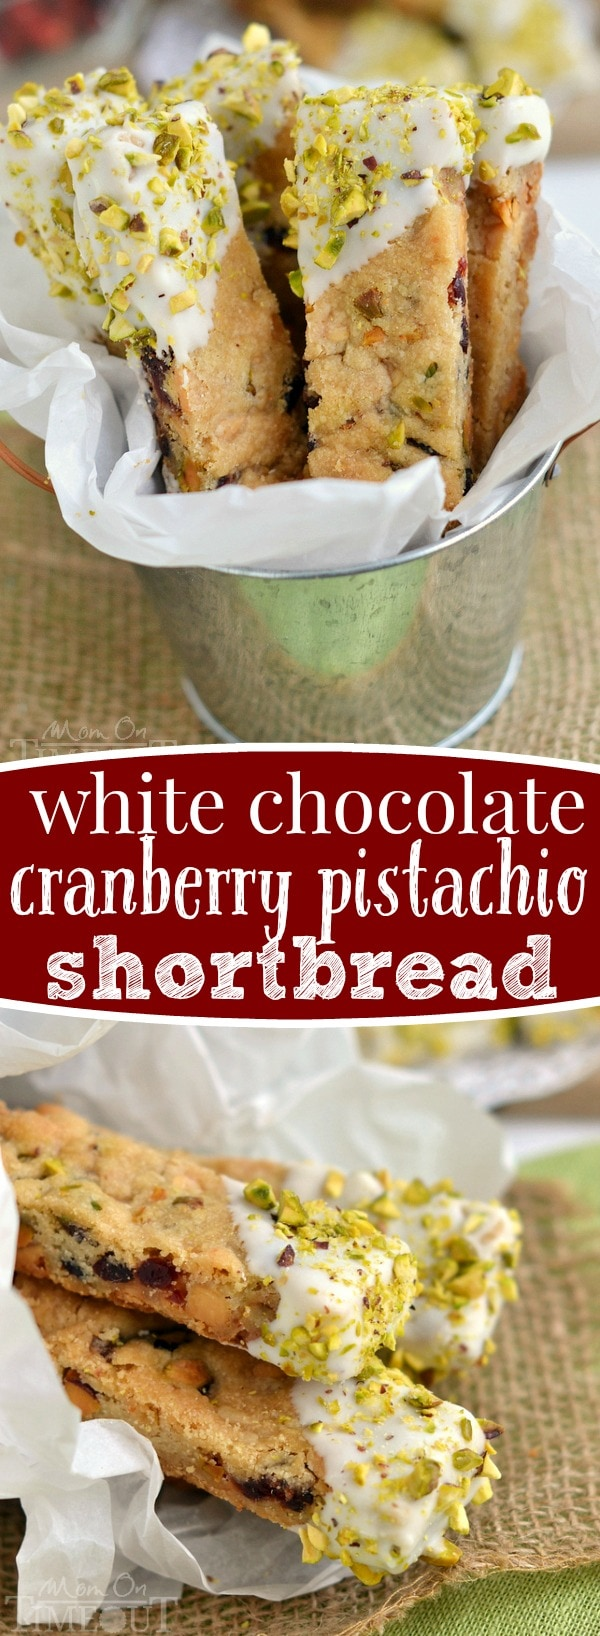 White Chocolate Cranberry Pistachio Shortbread is the prettiest treat you'll make this holiday season! Easy to make, these shortbread sticks are perfect for cookie trays and gifts.